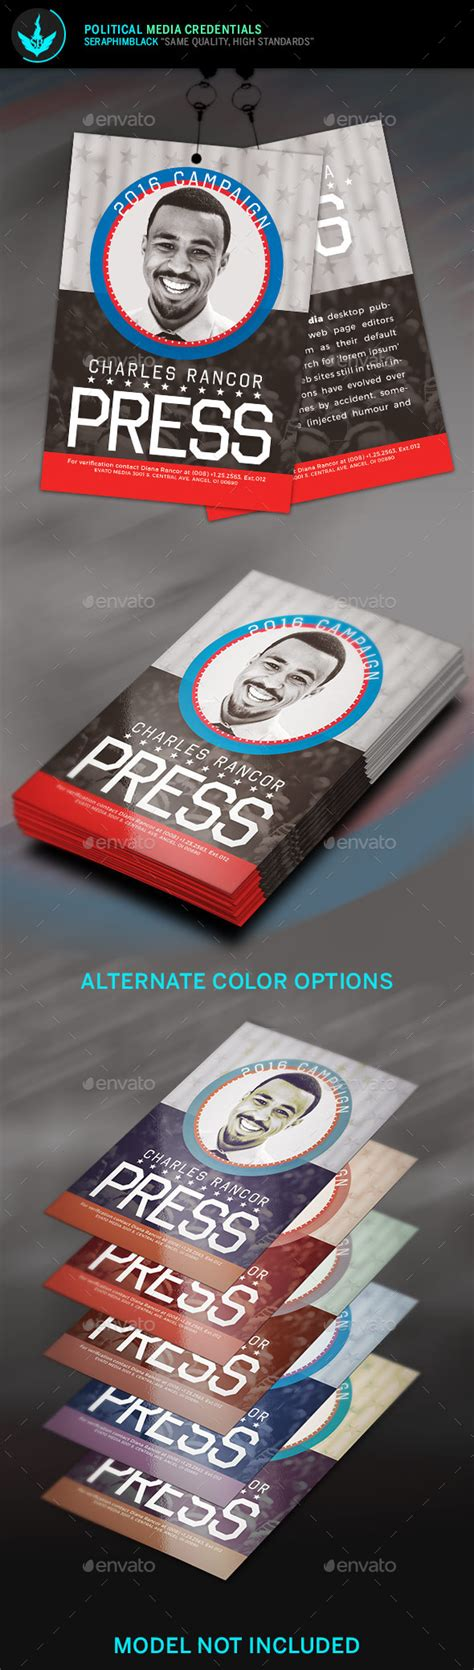 Political Media Credentials Template By Seraphimblack Graphicriver Media Pass Template Photoshop